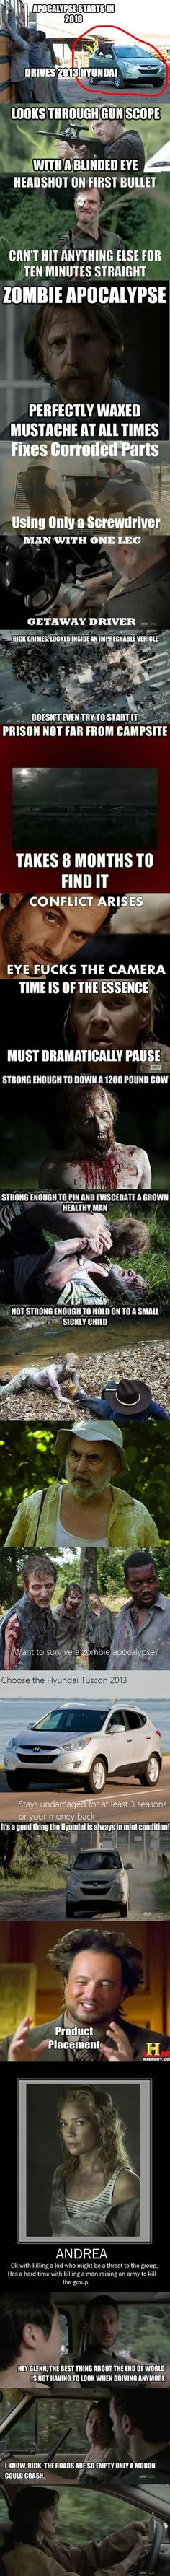 The Most Biting Walking Dead Memes - While I love this show, these are seriously hilarious & true! ;] Oh and let's not forget the baby!